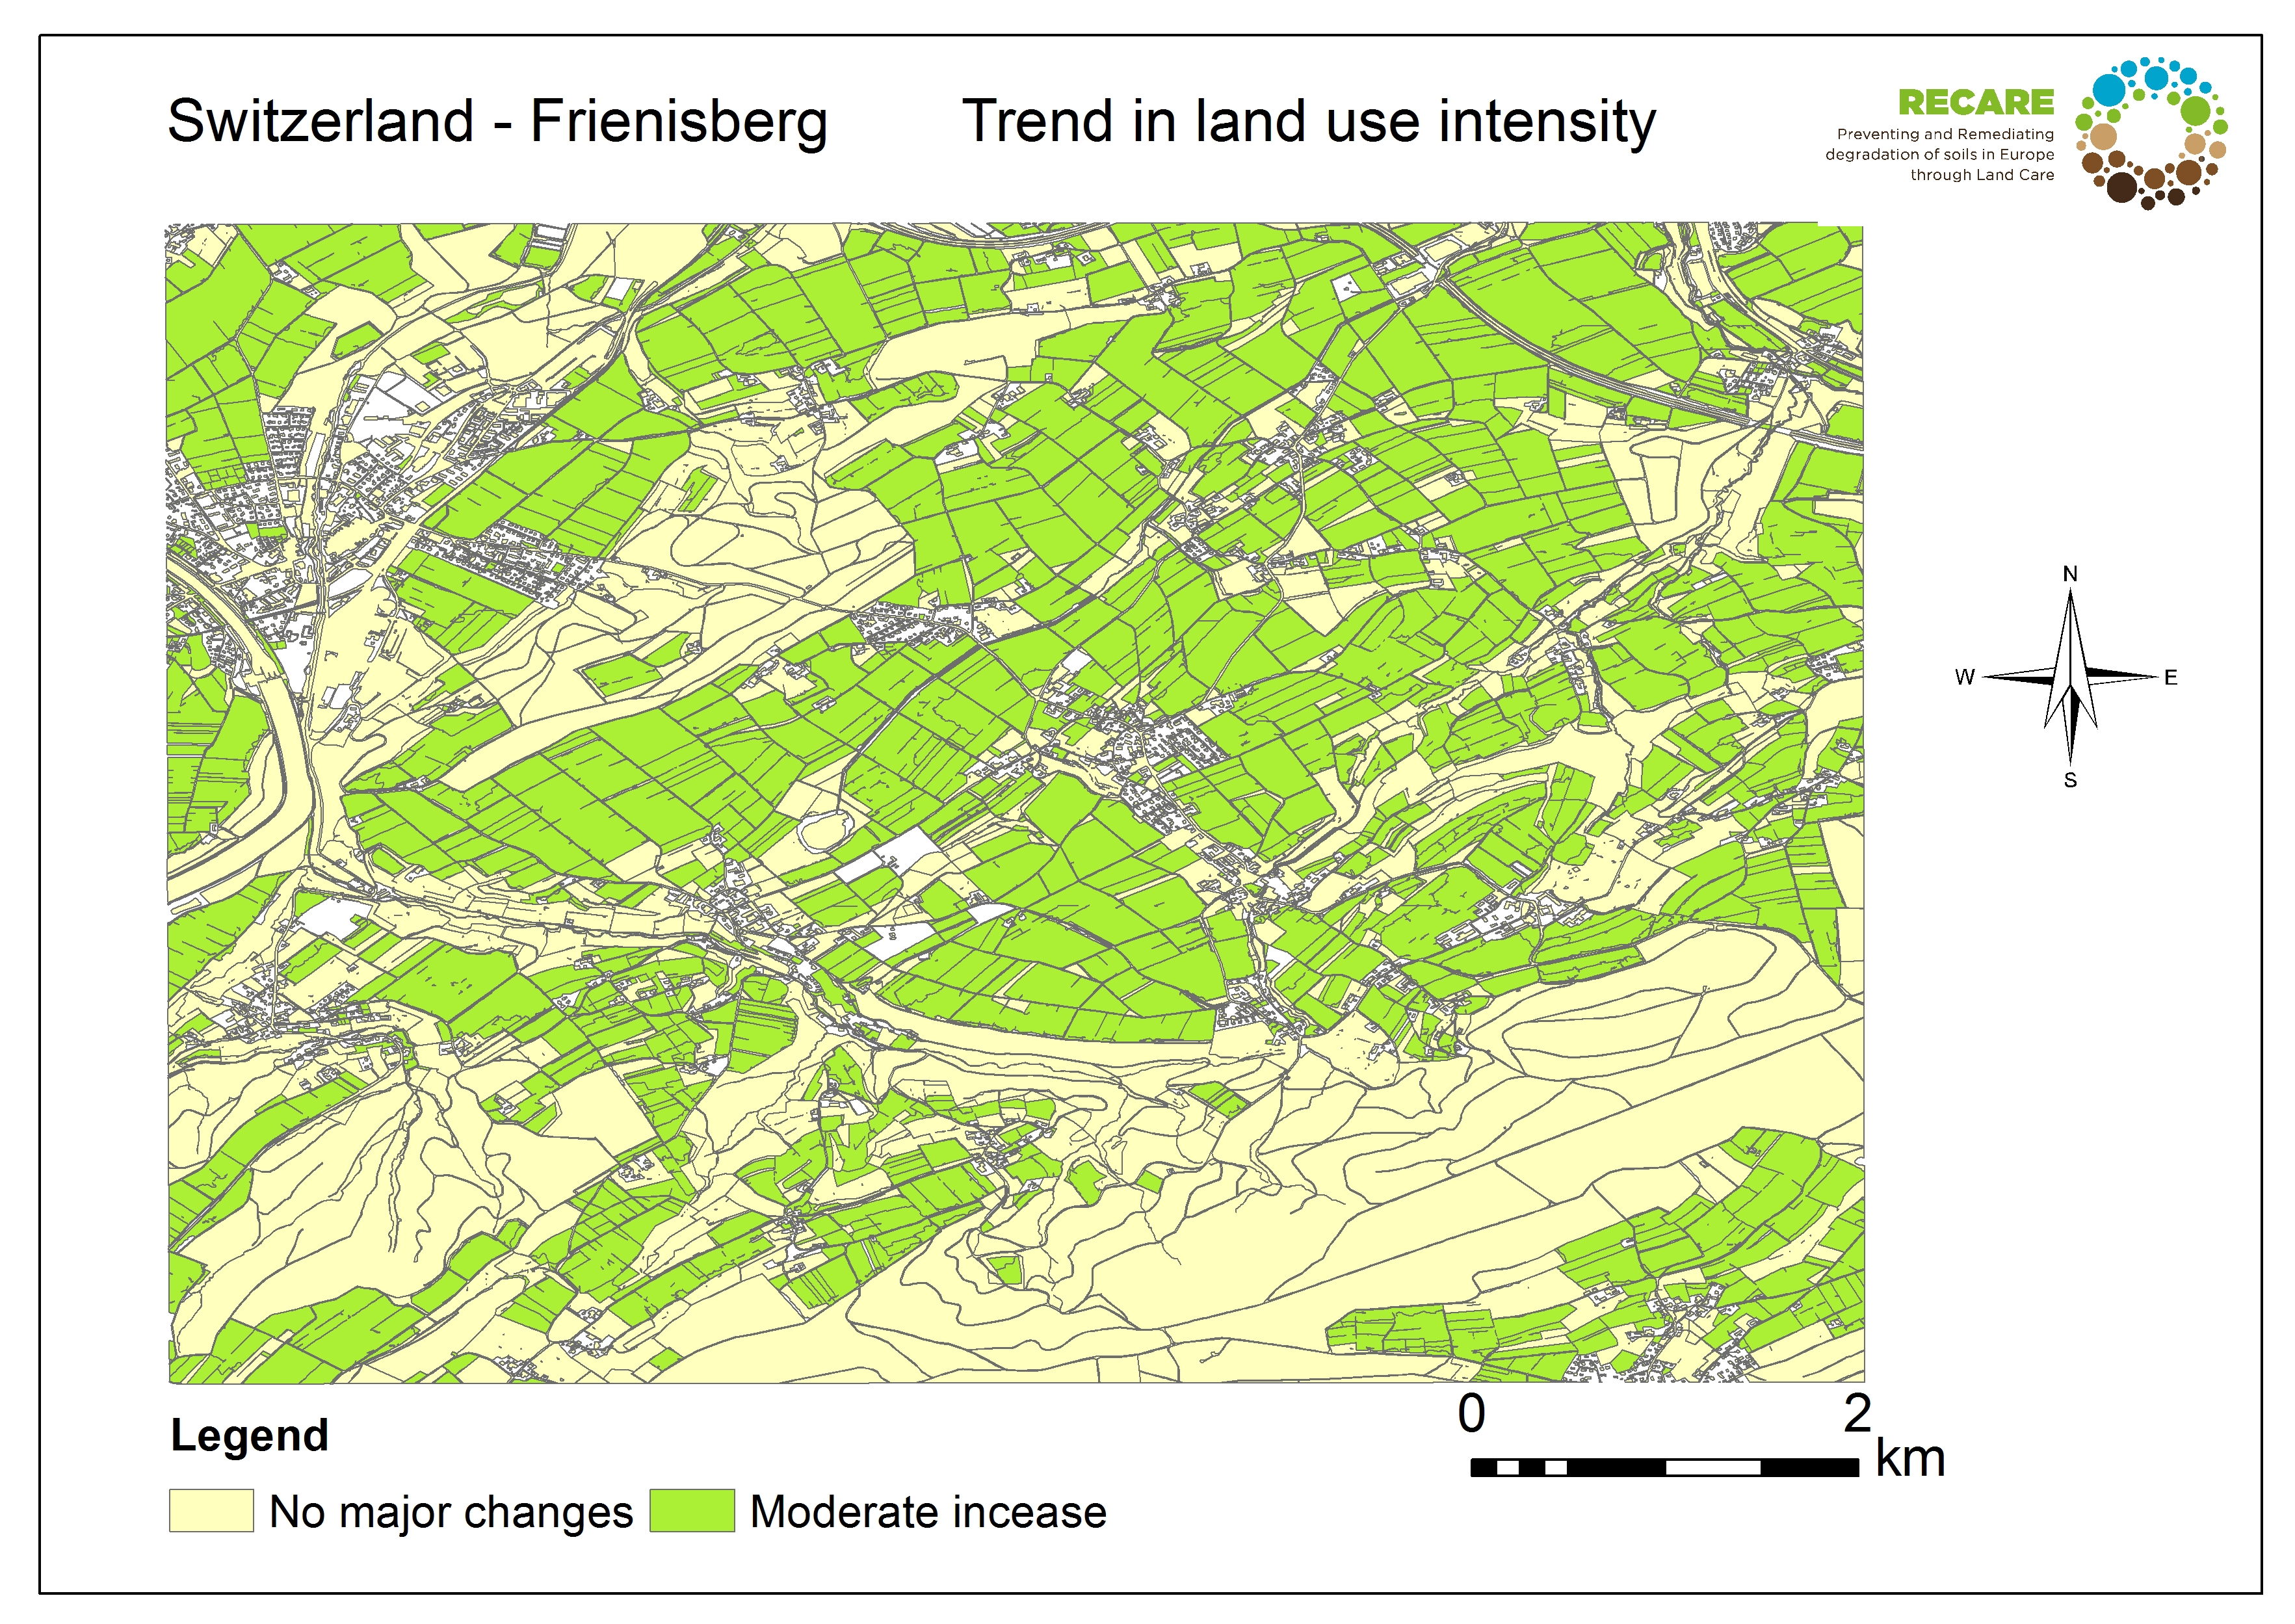 Switzerland Frienisberg trend land use intensity